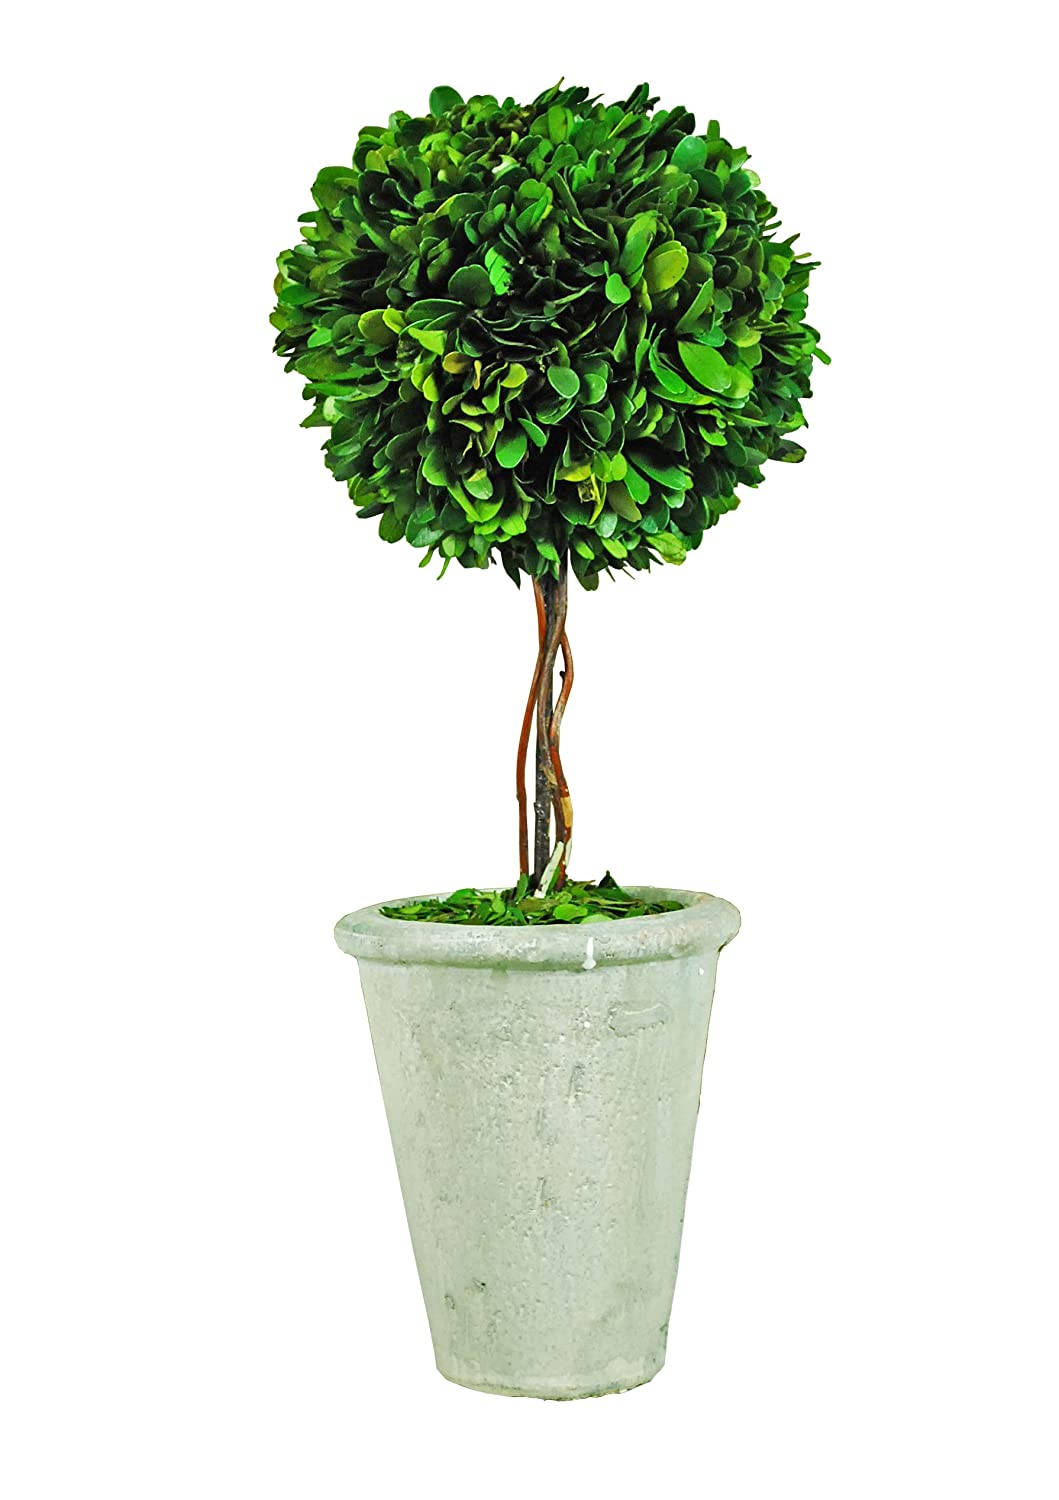 Amazon.com - Galt International Naturally Preserved Real Boxwood Ball  Topiary Plant with Twig Stem and Restoration Style White Pot, 29.5-Inch -  Artificial ...